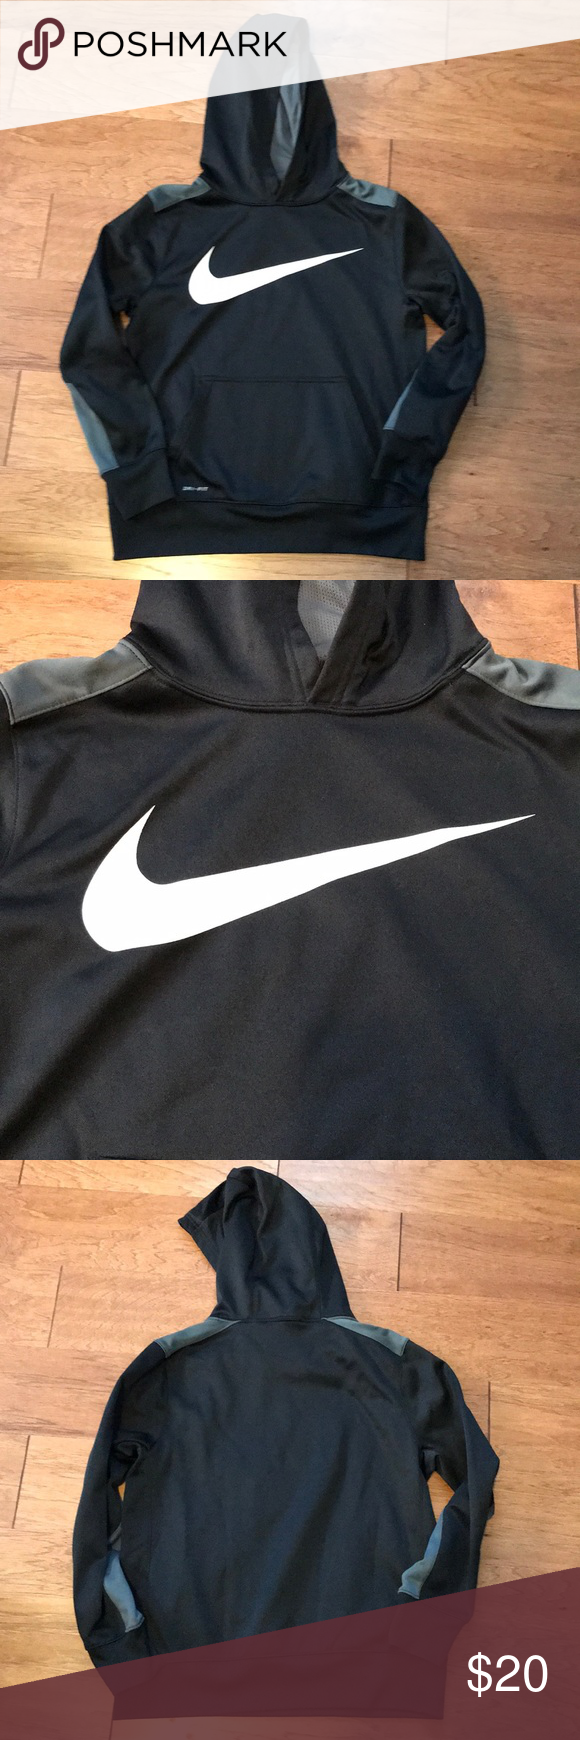 b7c7351b Nike Dri-Fit Hoodie Boys Nike Dri Fit hoodie Size large Kangaroo pocket  Black,grey and white Hoodie is in excellent pre owned condition Nike Shirts  & Tops ...